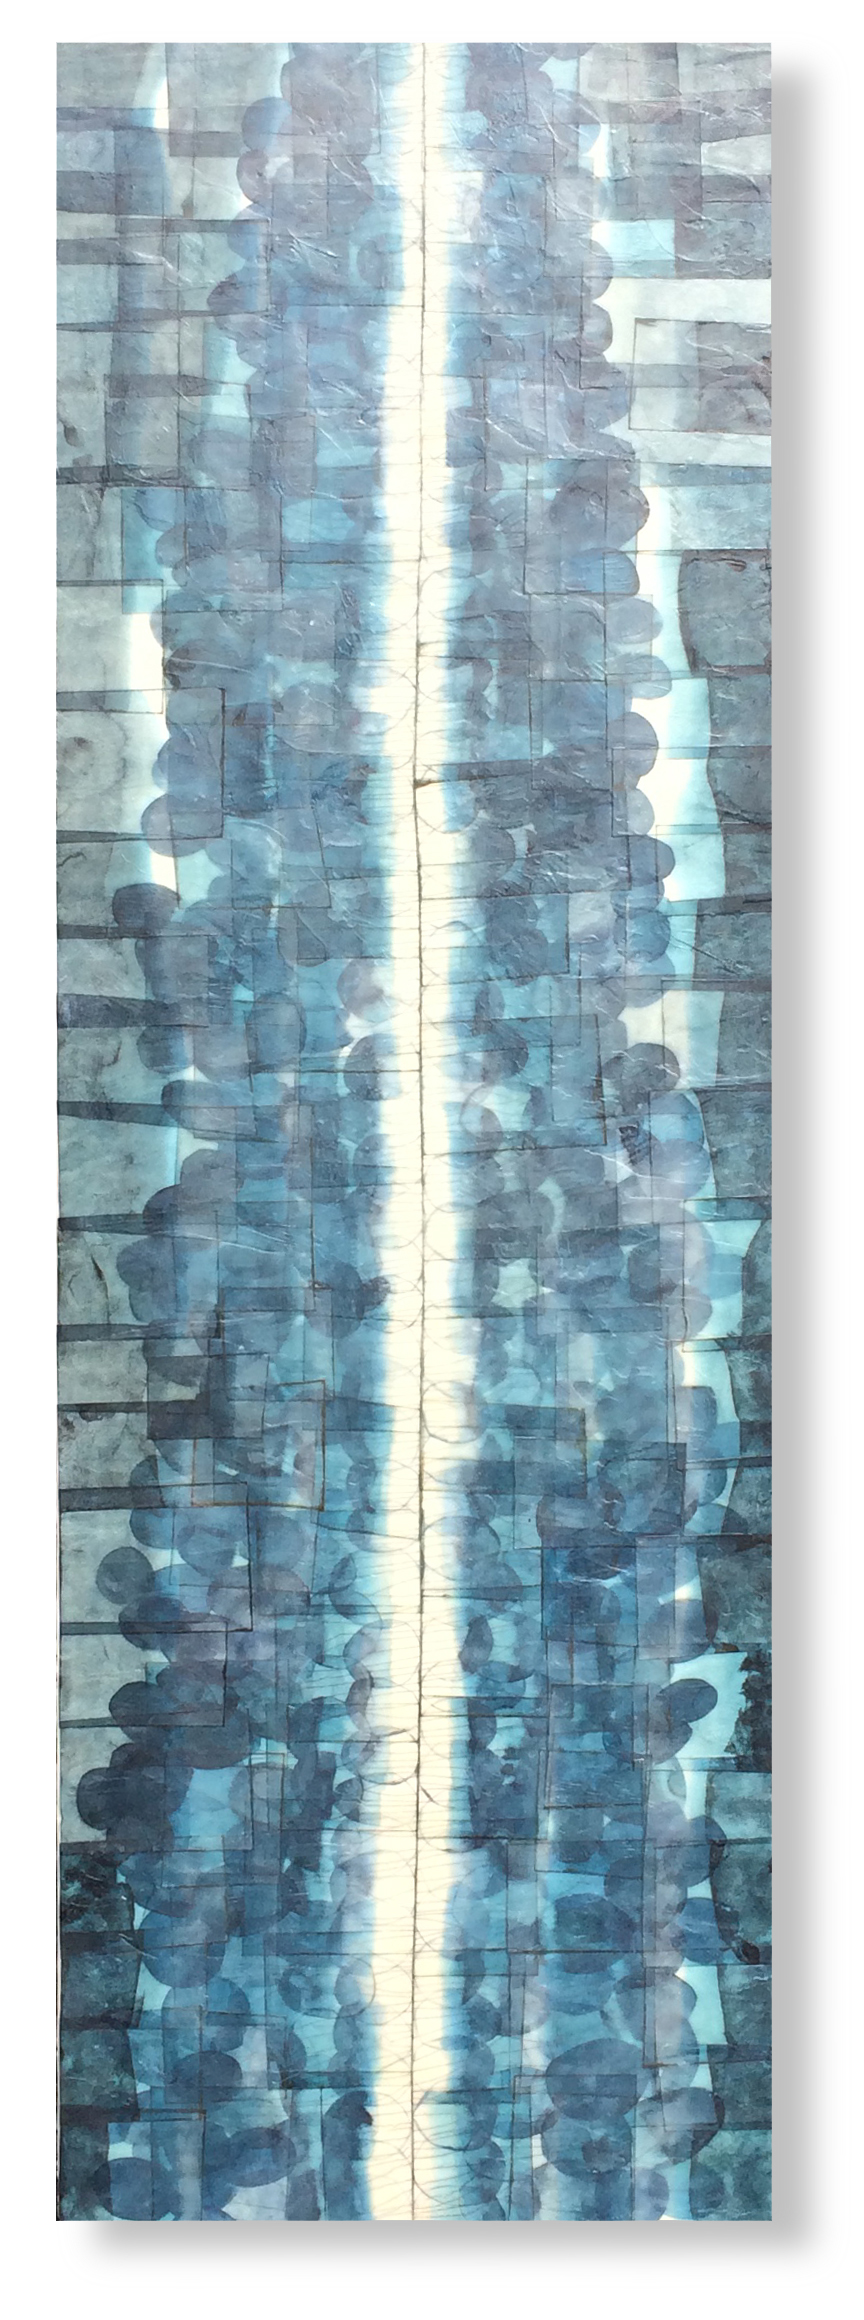 """Coming up for Air, 2015 12"""" x 36""""x 2"""" Encaustic, Mulberry Paper, Watercolor"""